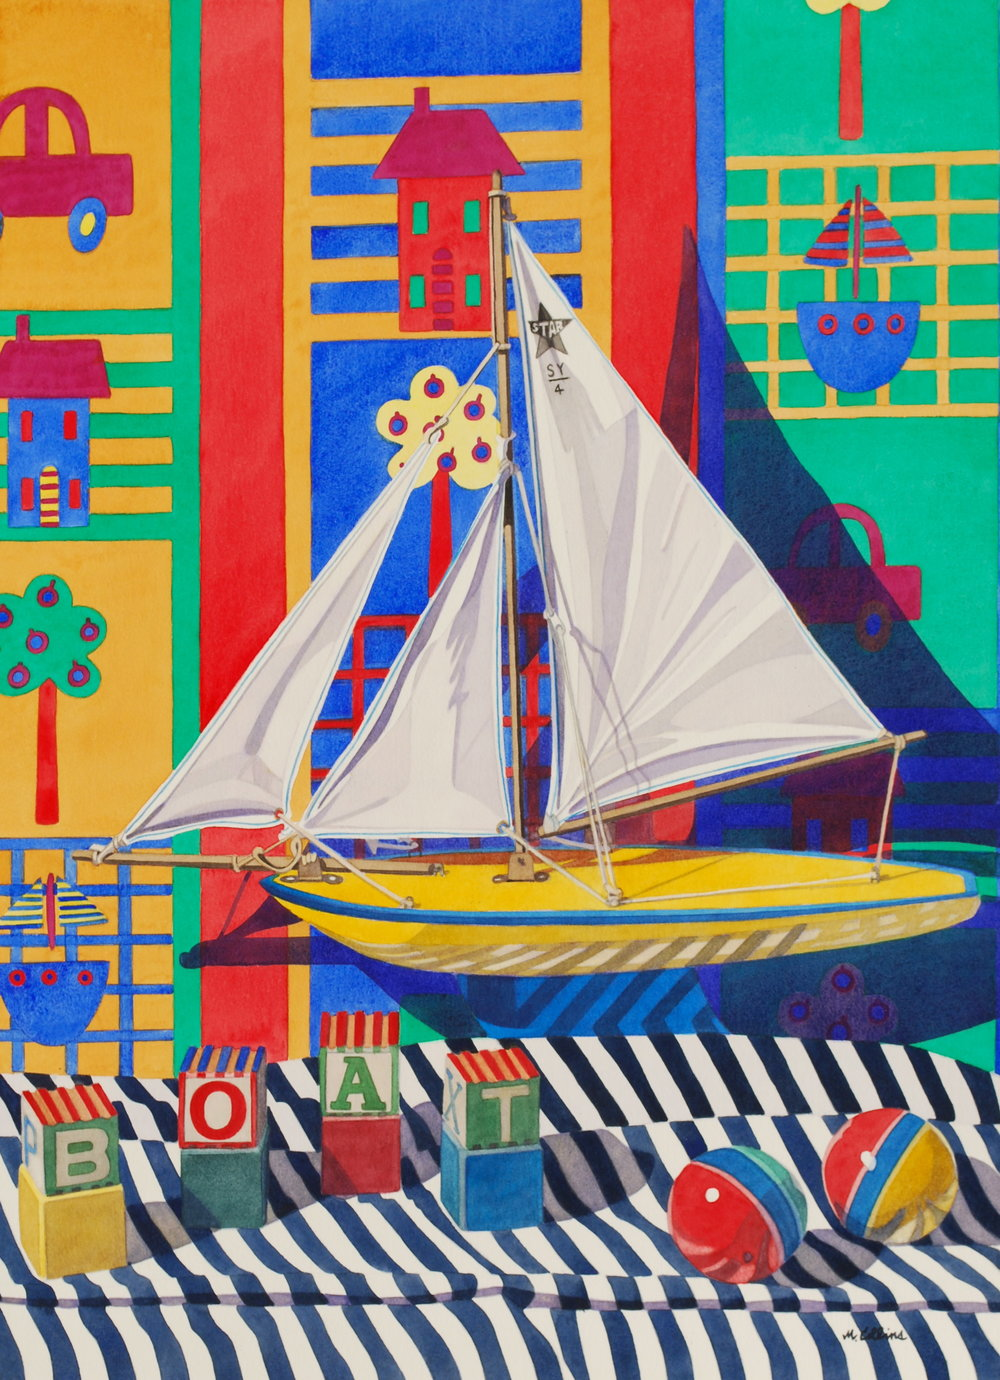 Marjorie Collins, Boats, Blocks and Balls, Watercolour, 97 x 75 x 2,  http://marjoriecollins.com